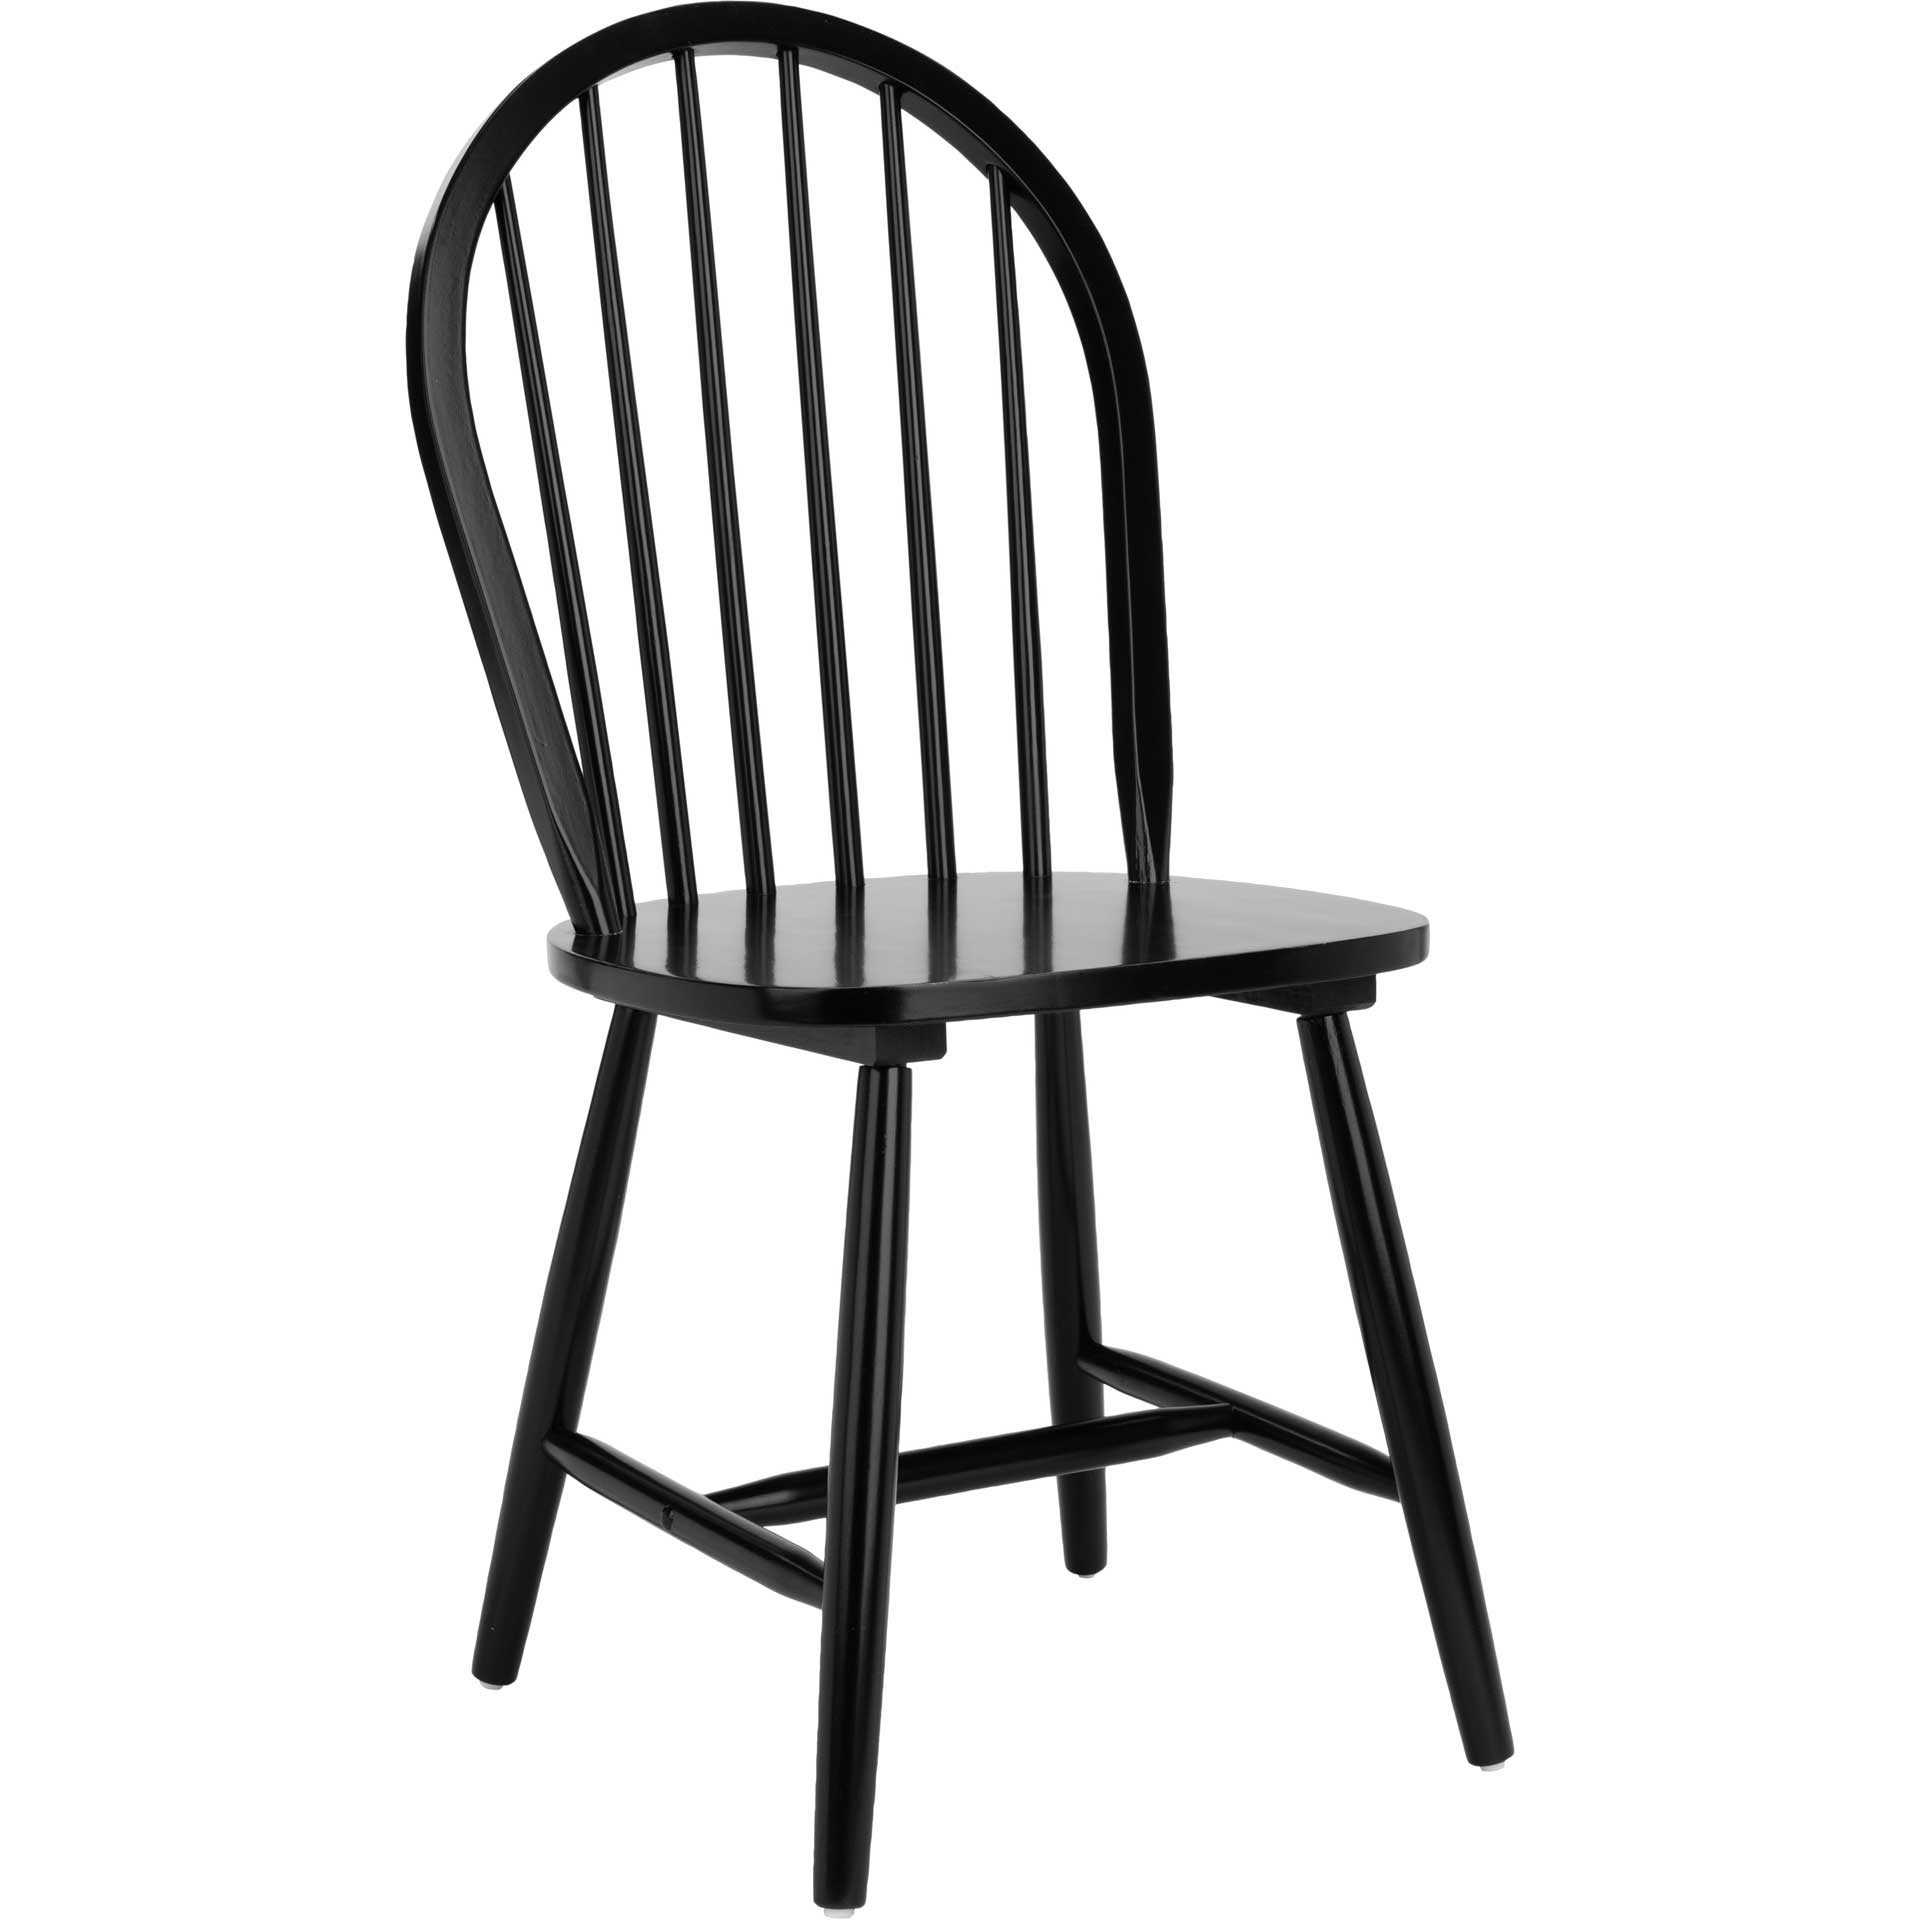 Calista Spindle Back Chair Black (Set of 2)